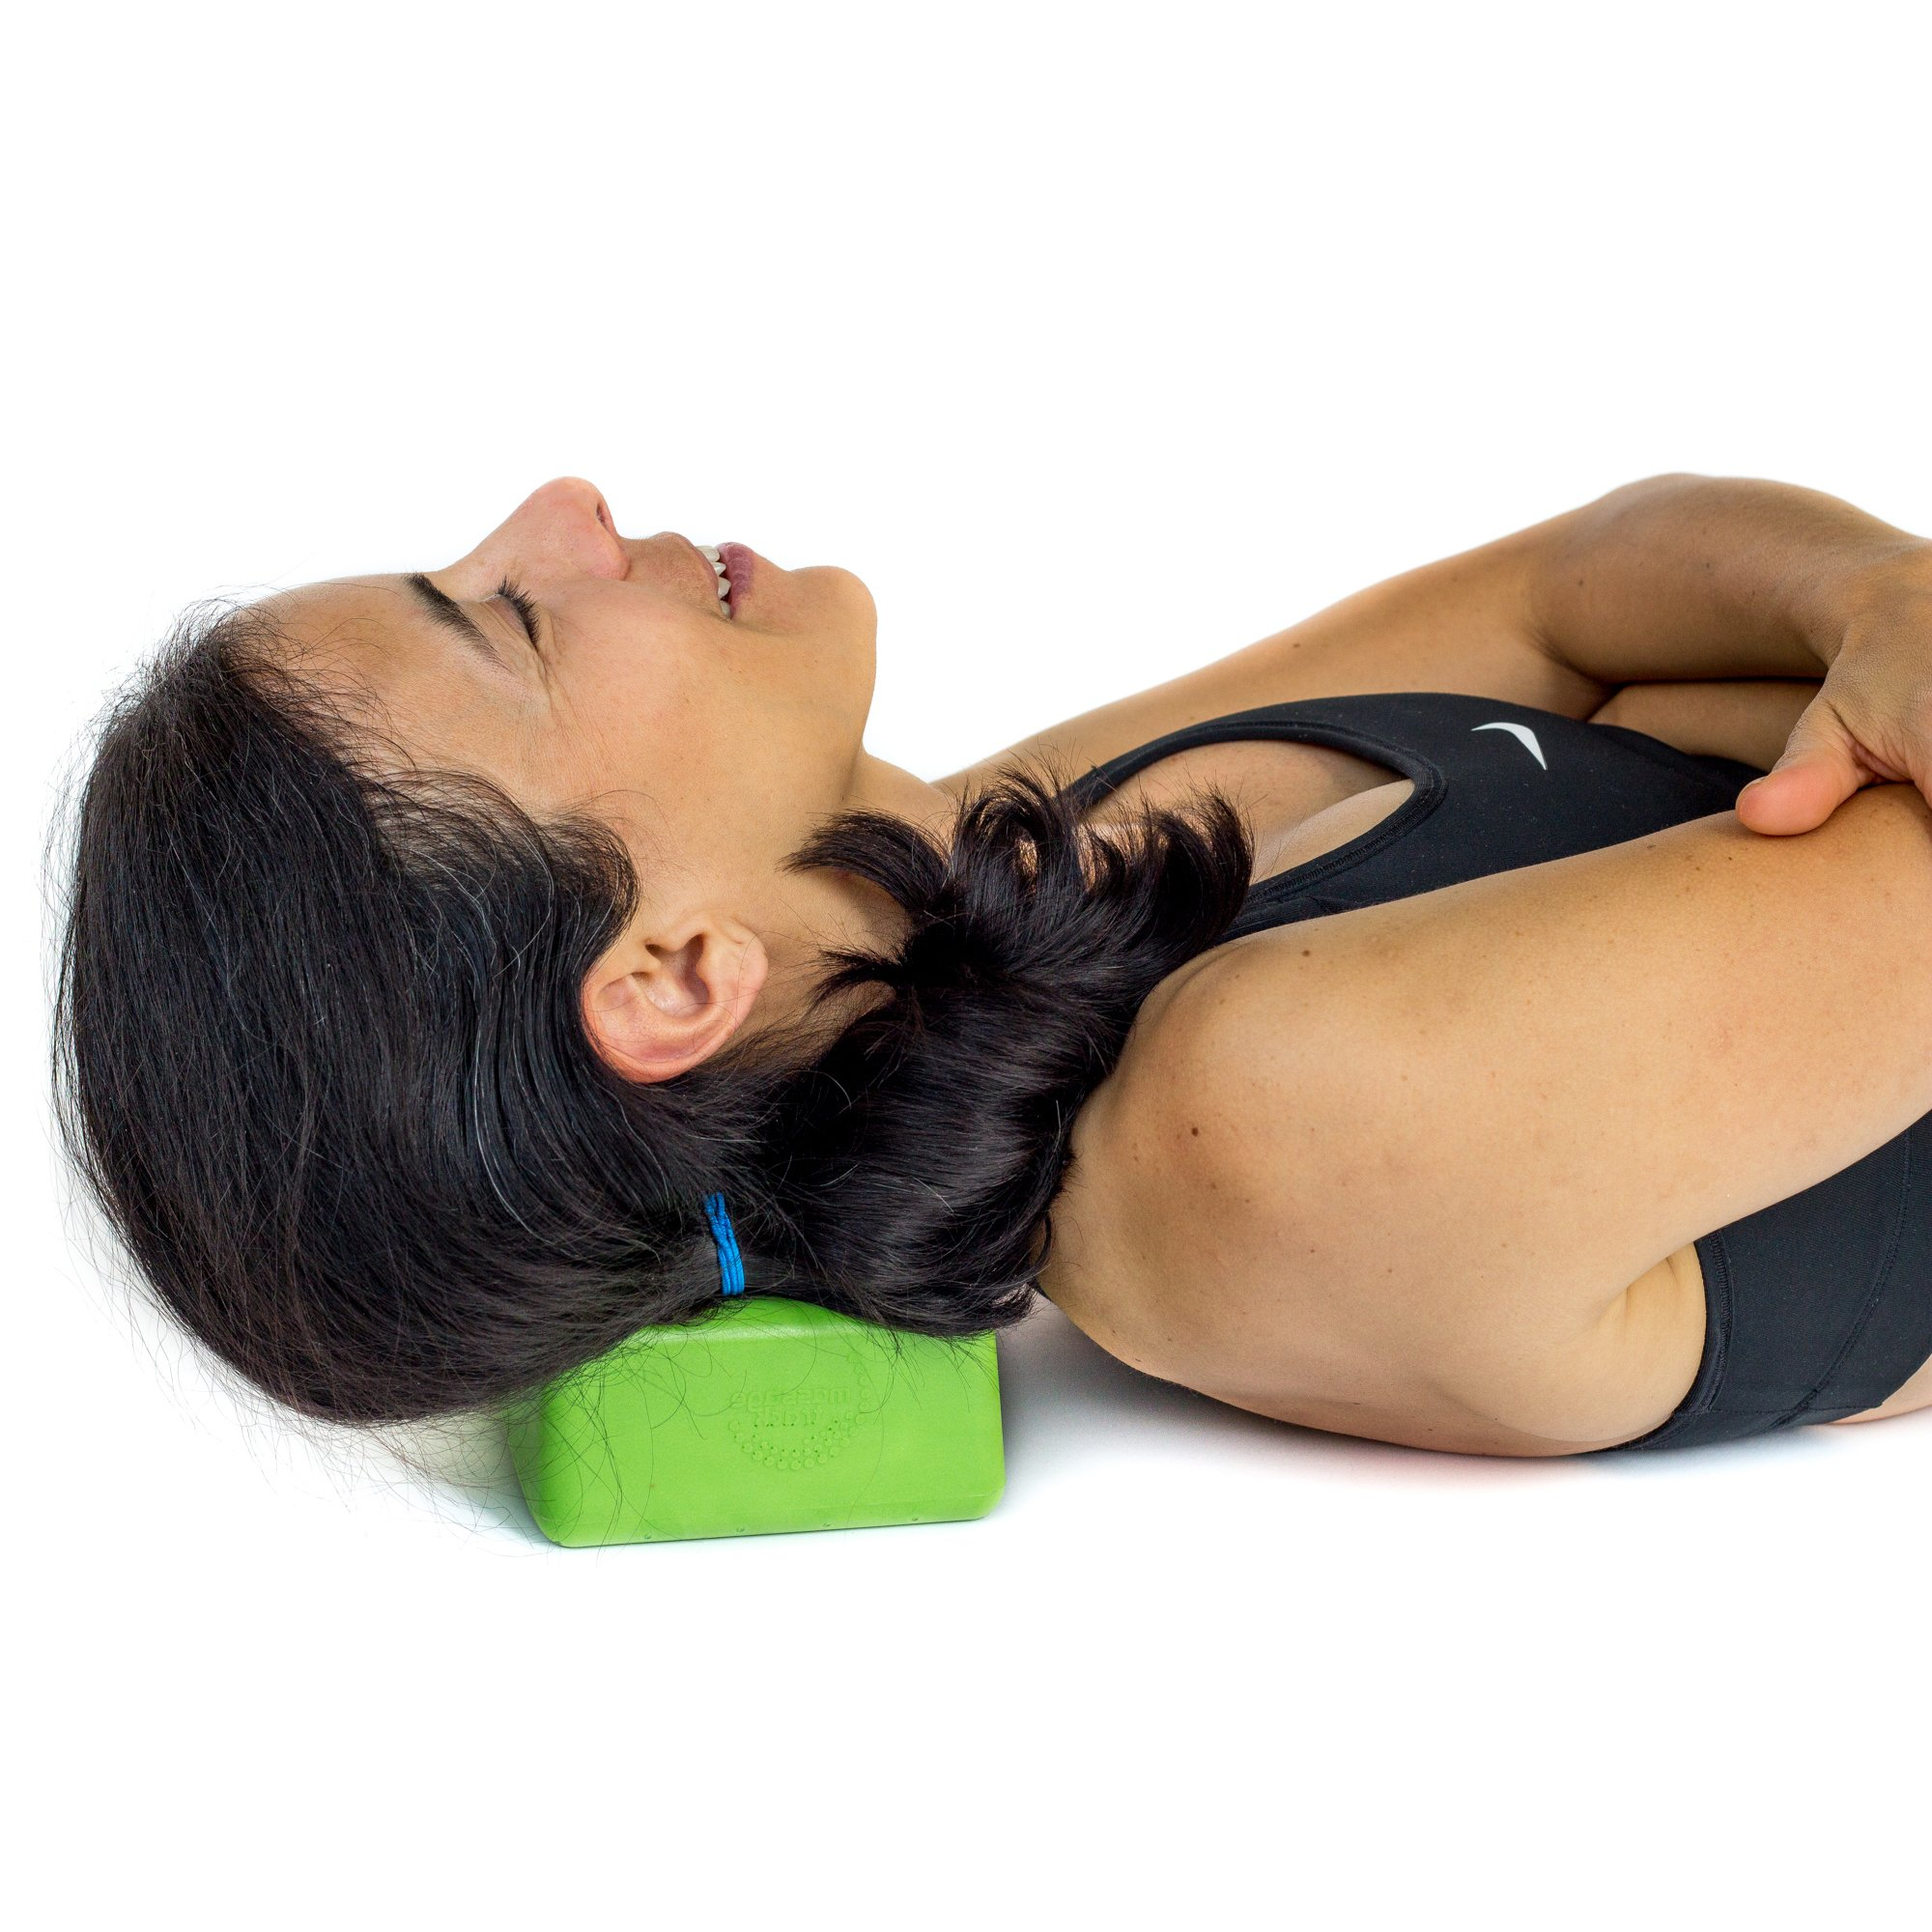 Myofascial release in fitness: a description of the technique, exercises and reviews 58